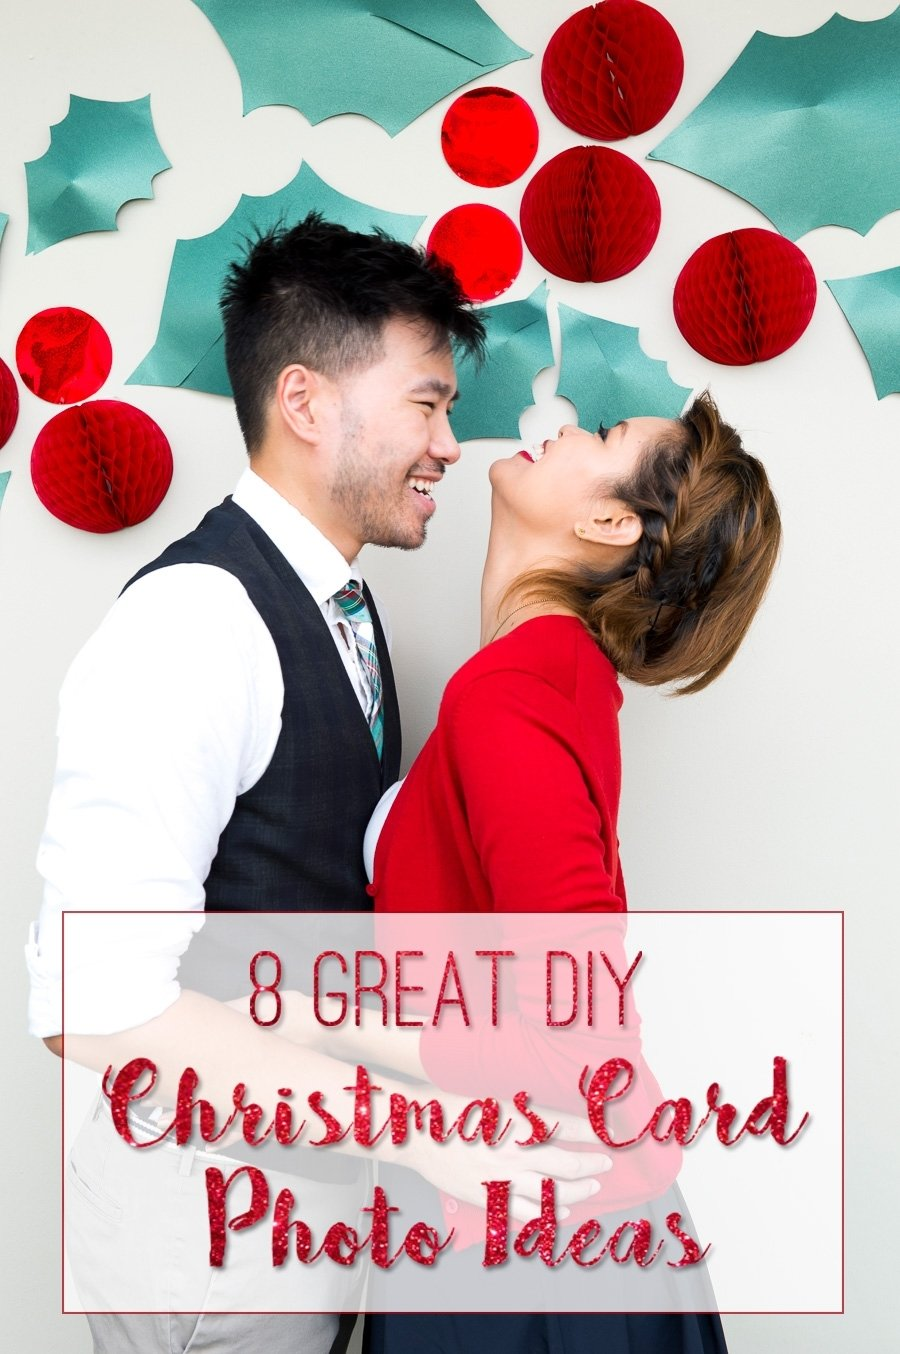 10 Fashionable Christmas Card Ideas For Couples the wedding scoop 2021